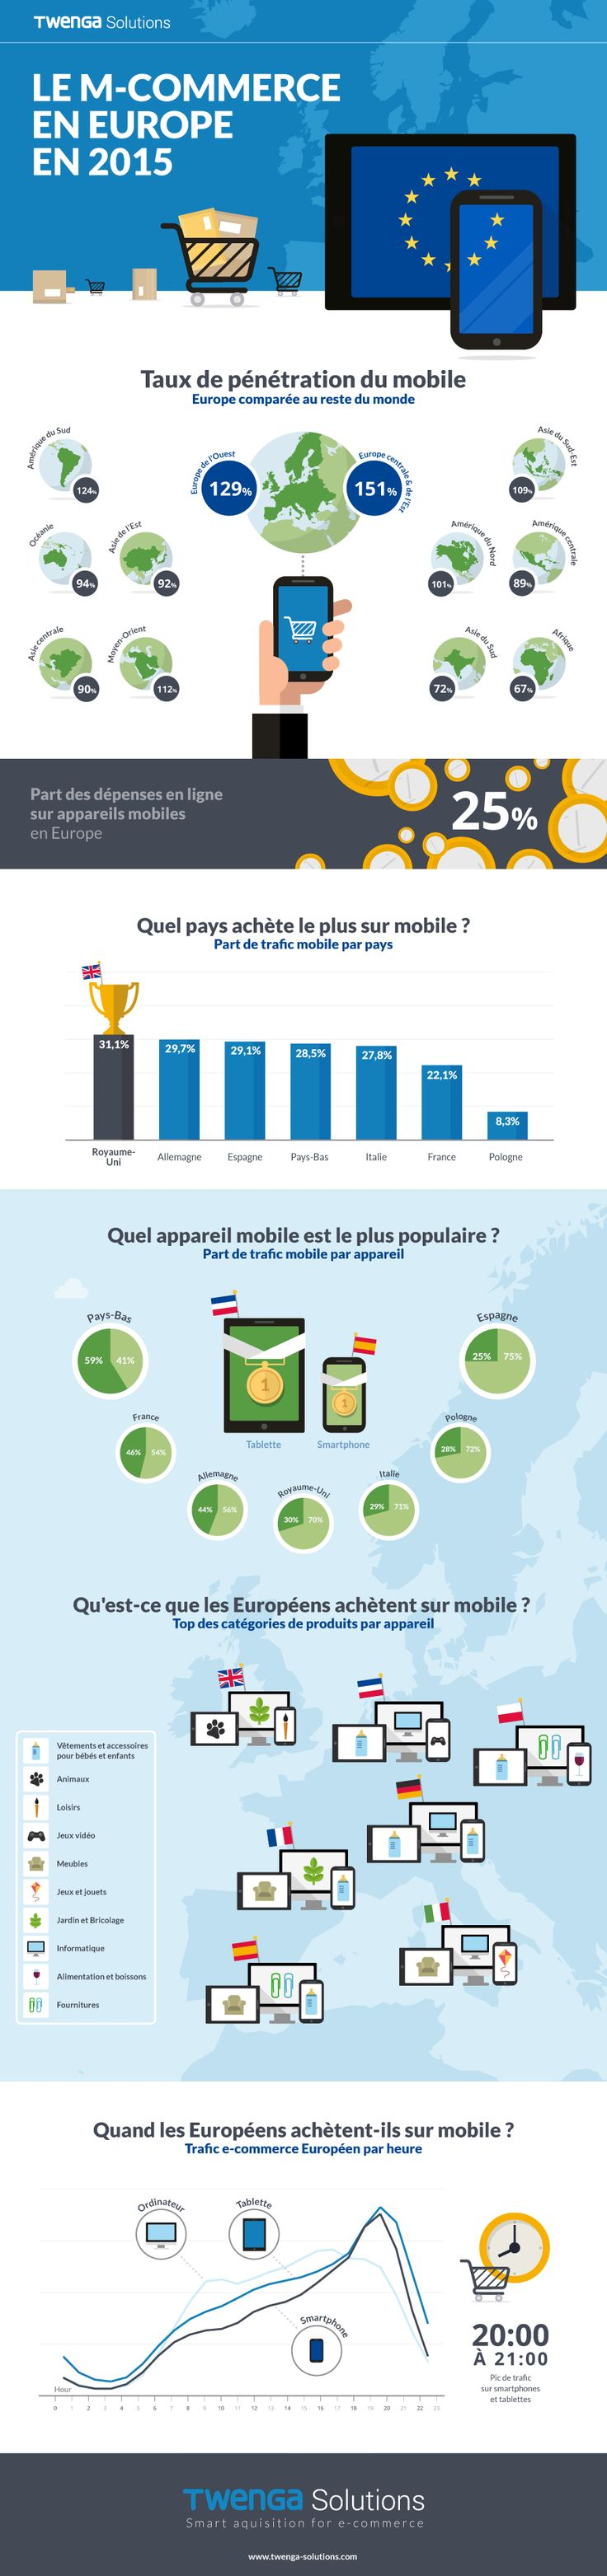 m_commerce_europe_2015_infographic.png (900×3823)